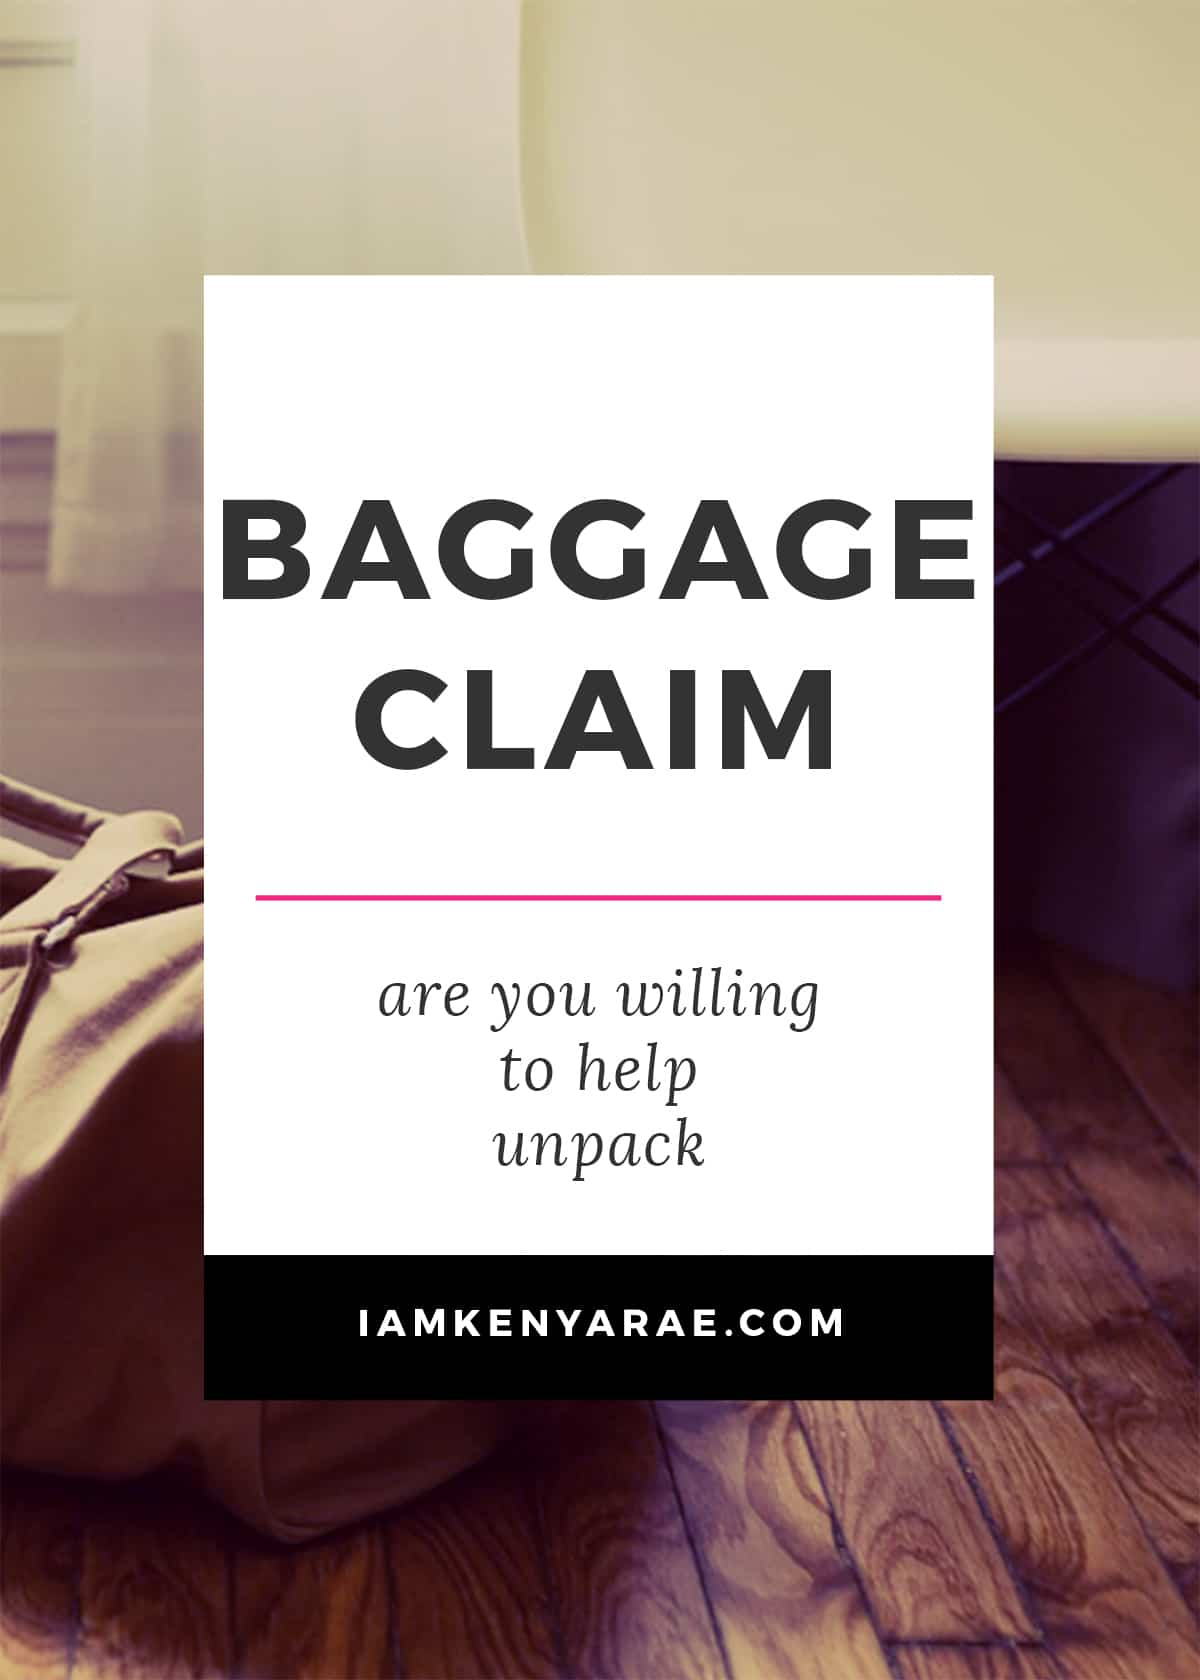 baggage-claim-are-you-willing-to-help-unpack